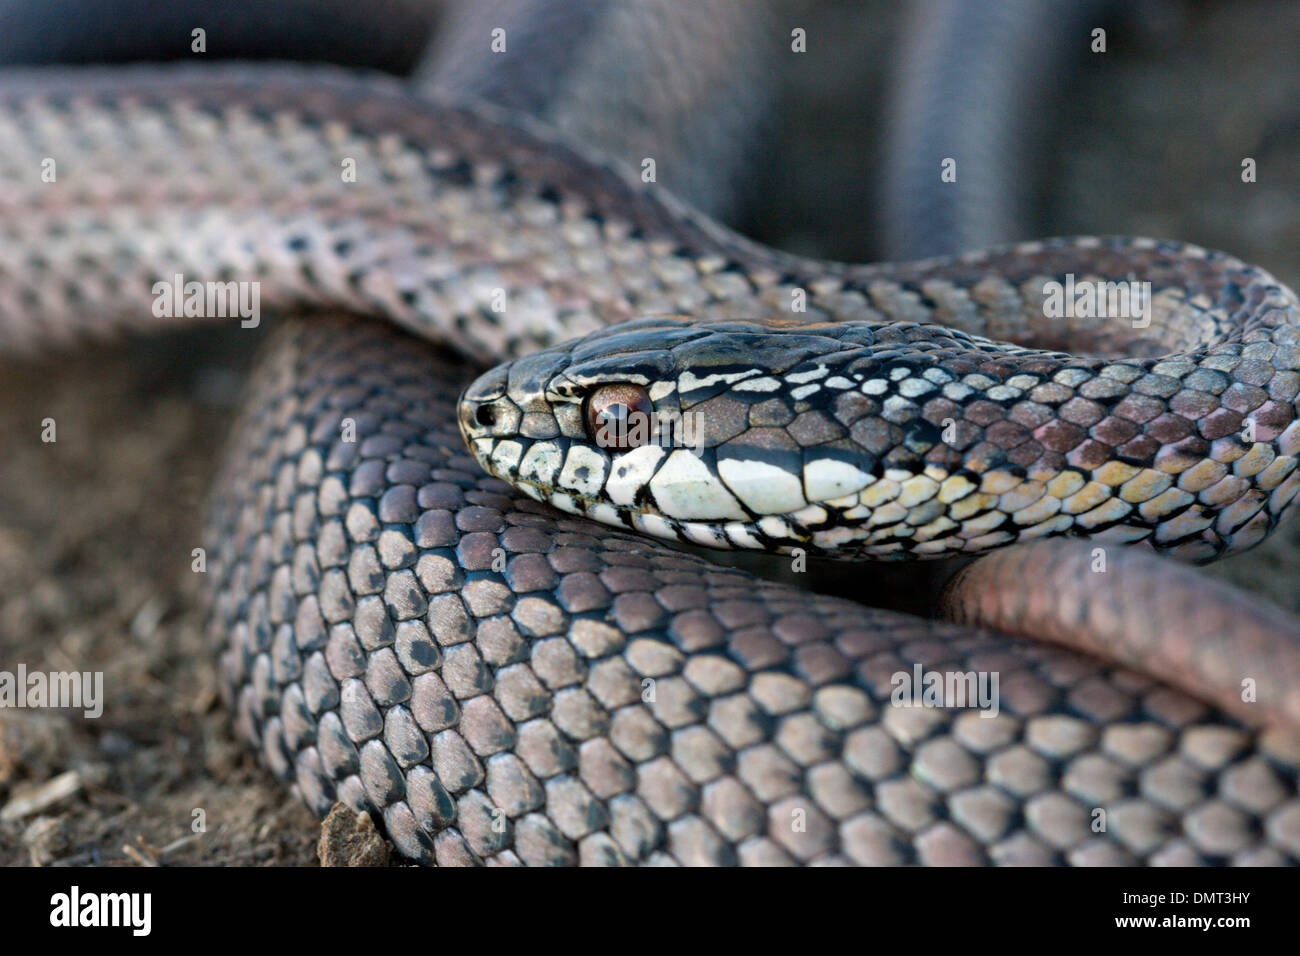 snake poisonous venomous culebra con cola larga Chile Stock Photo